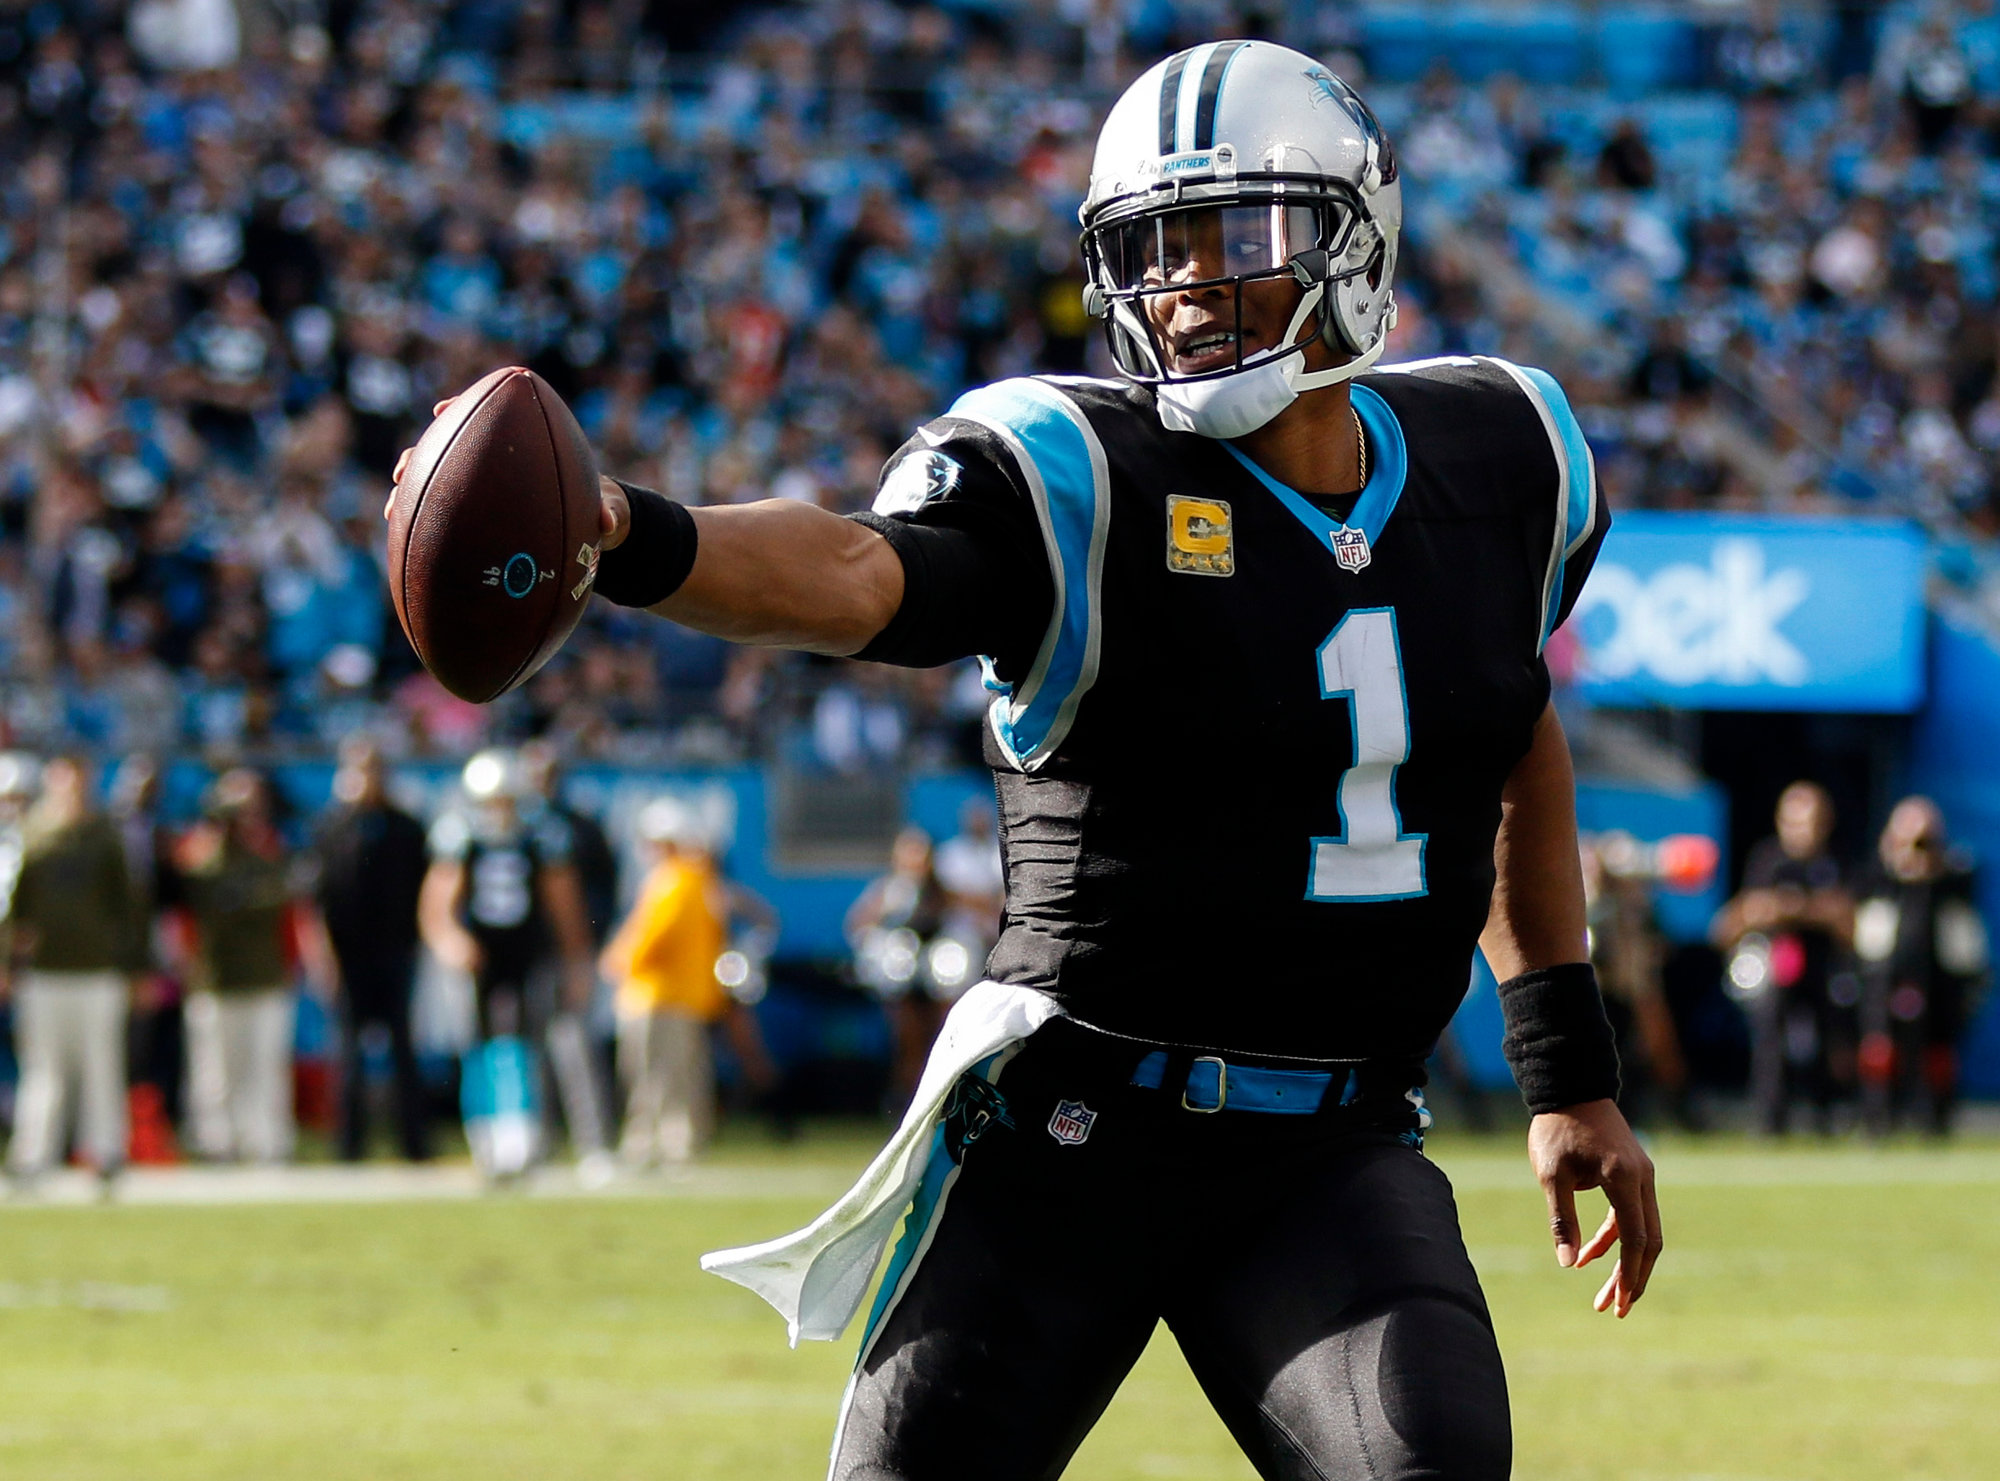 The Carolina Panthers and quarterback Cam Newton will take on the Pittsburgh Steelers on Thursday in Pittsburgh.